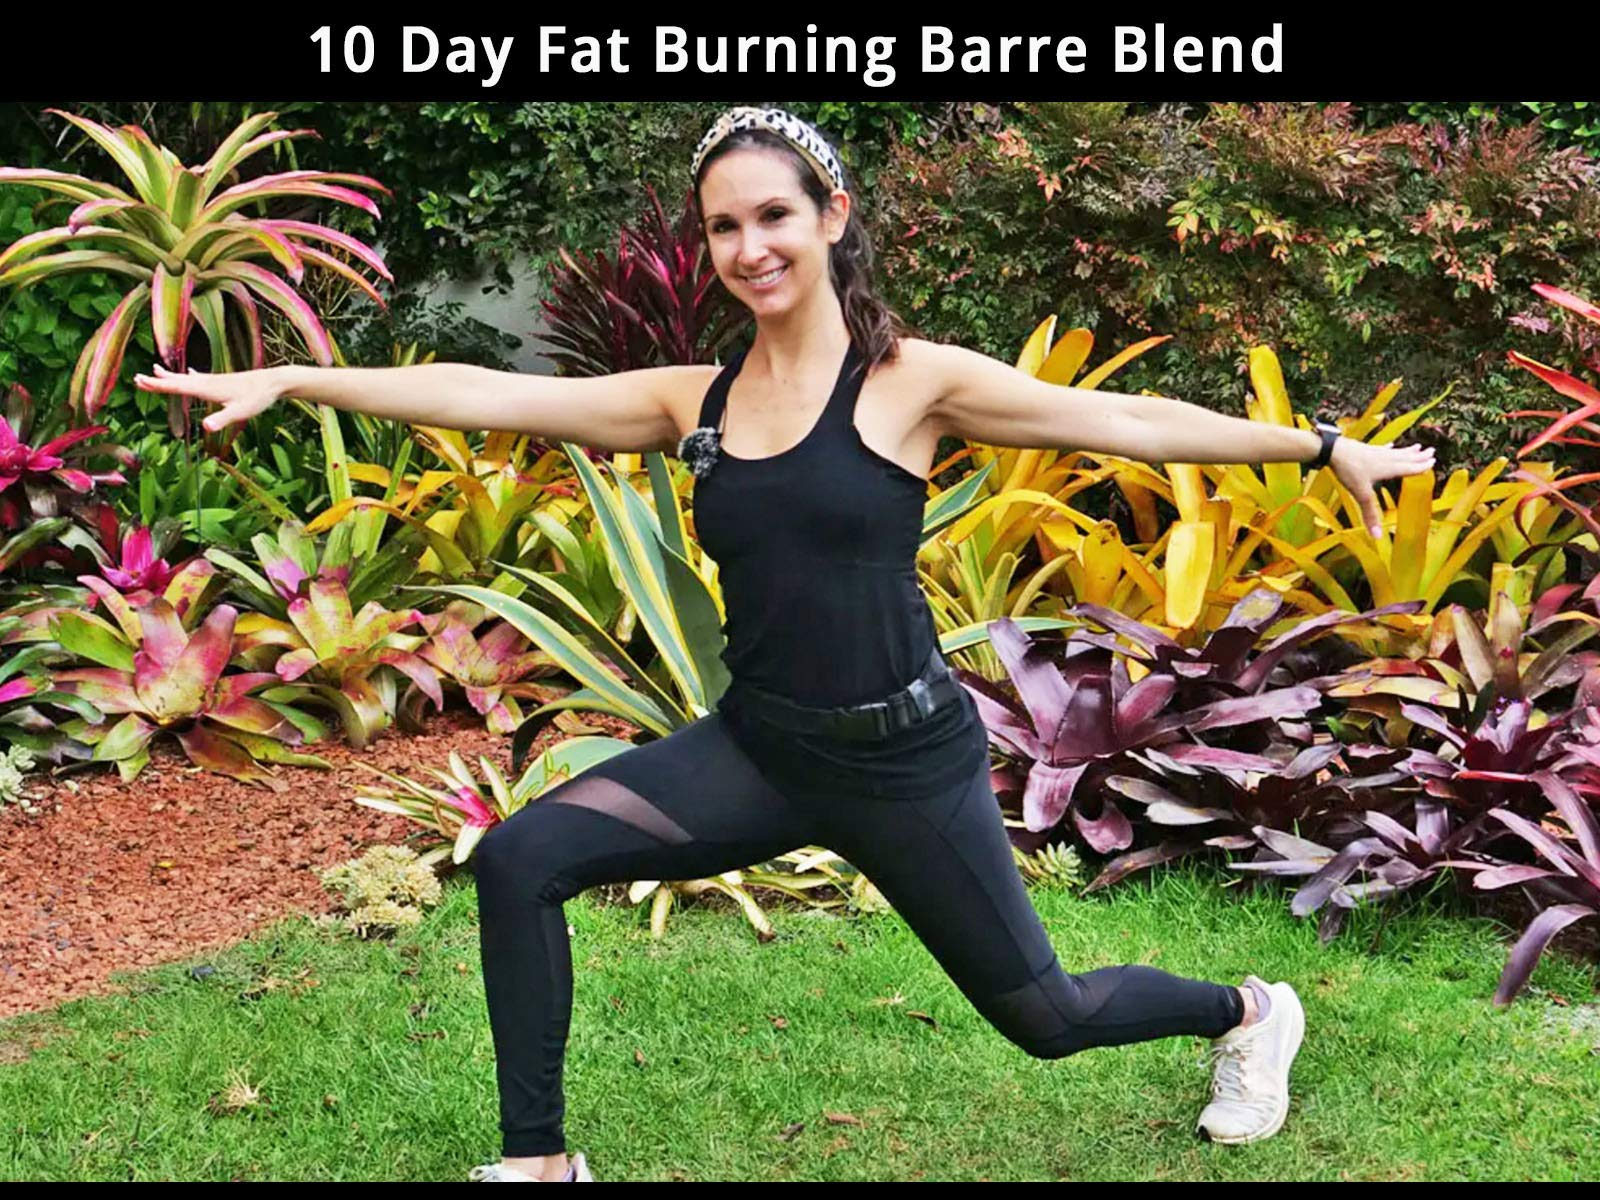 10 Day Fat Burning Barre Blend